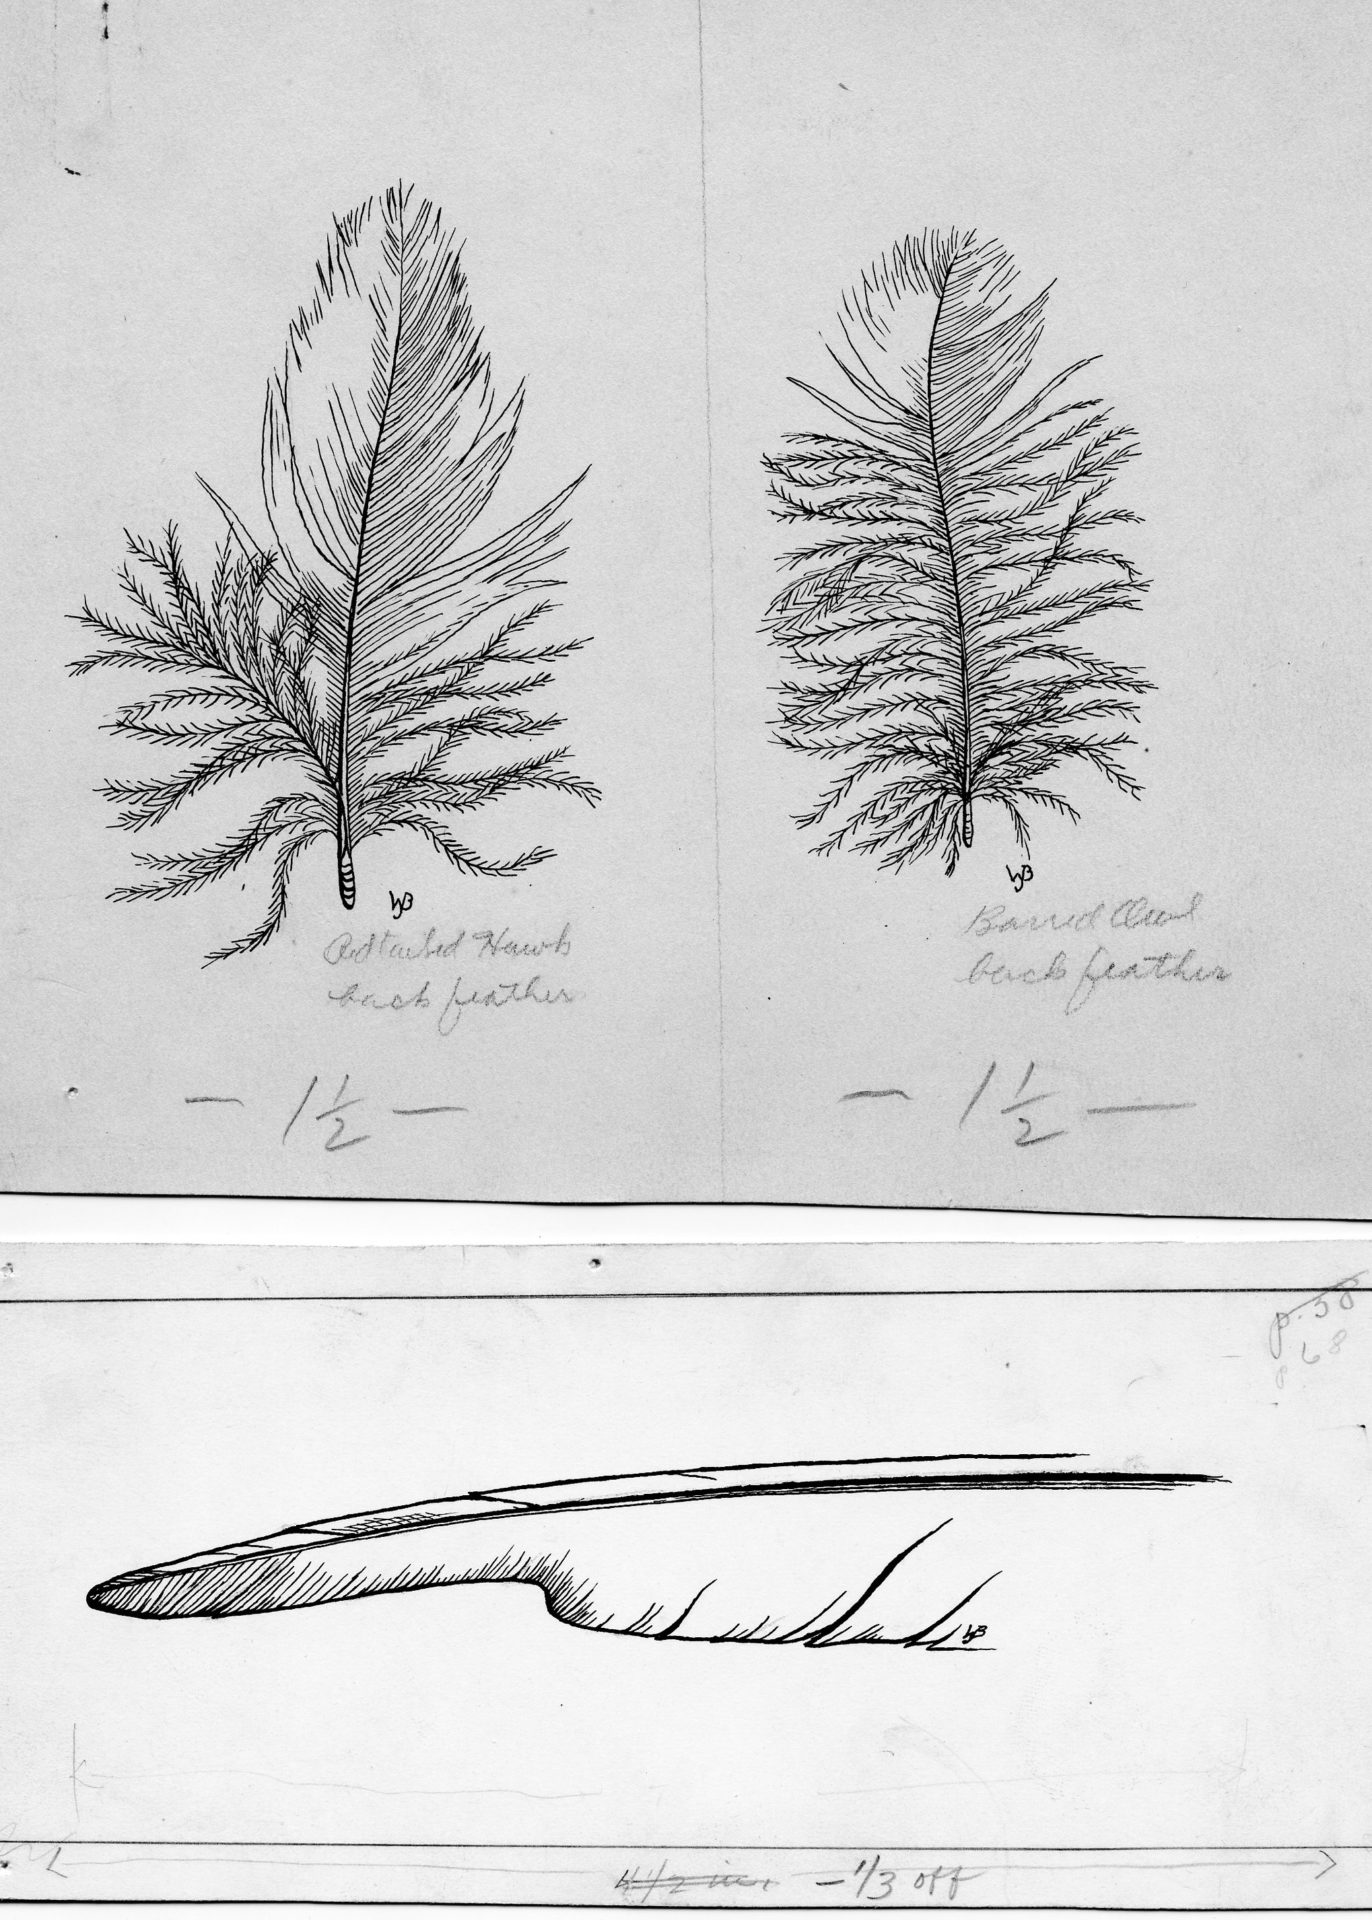 sketch of 3 feathers in black and white and with meticulous detail